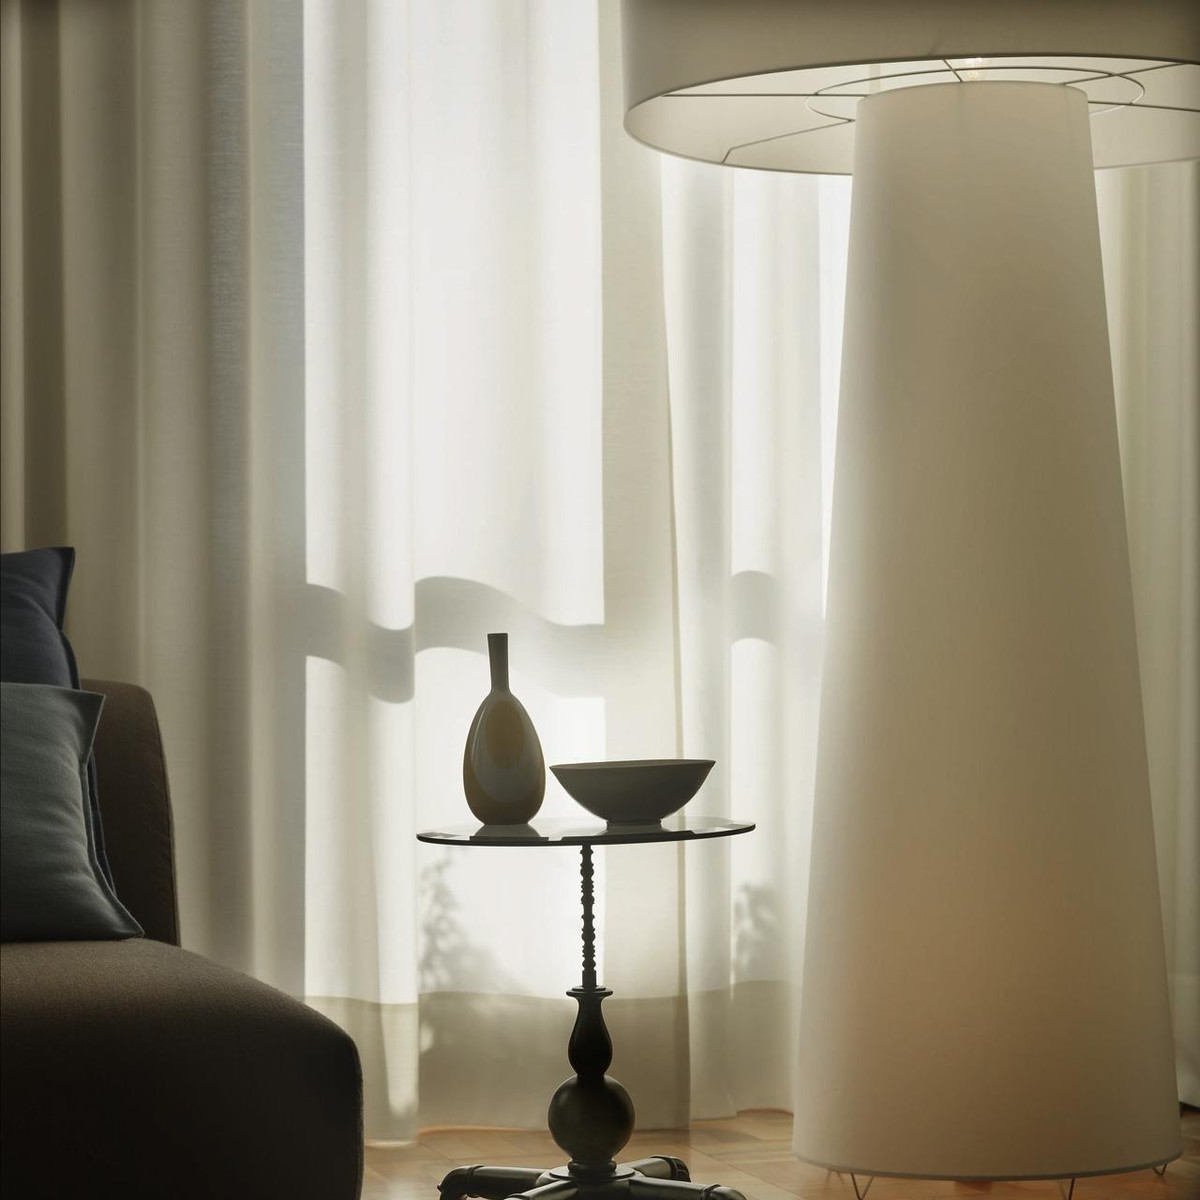 Big Shadow Po 98 Marcel Wanders Floor Lamp Cappellini